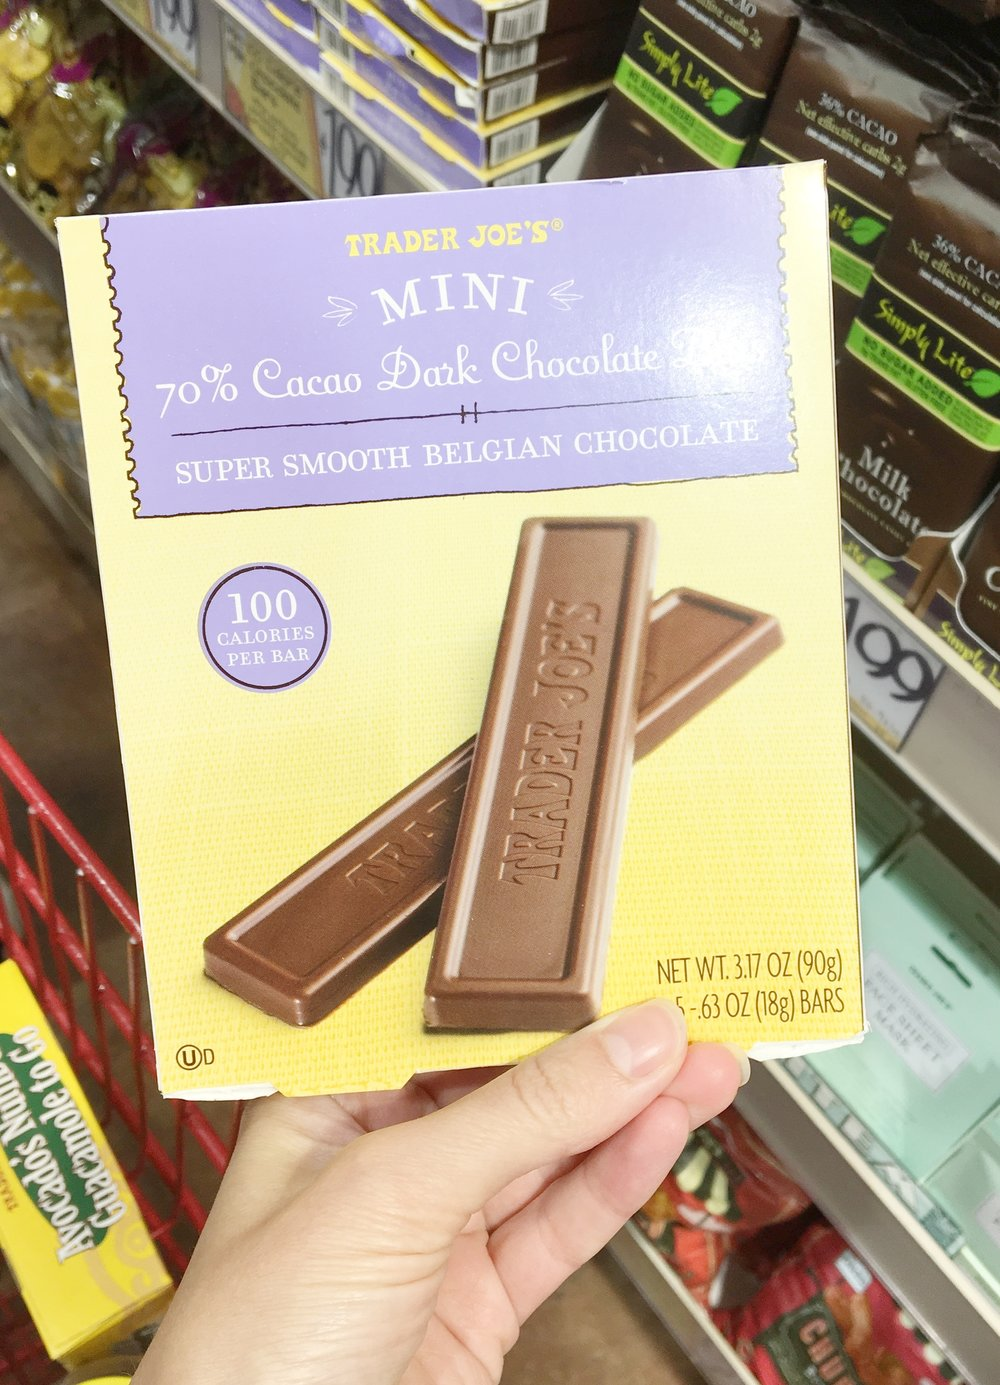 100-calorie chocolate bars - I actually prefer the milk chocolate!